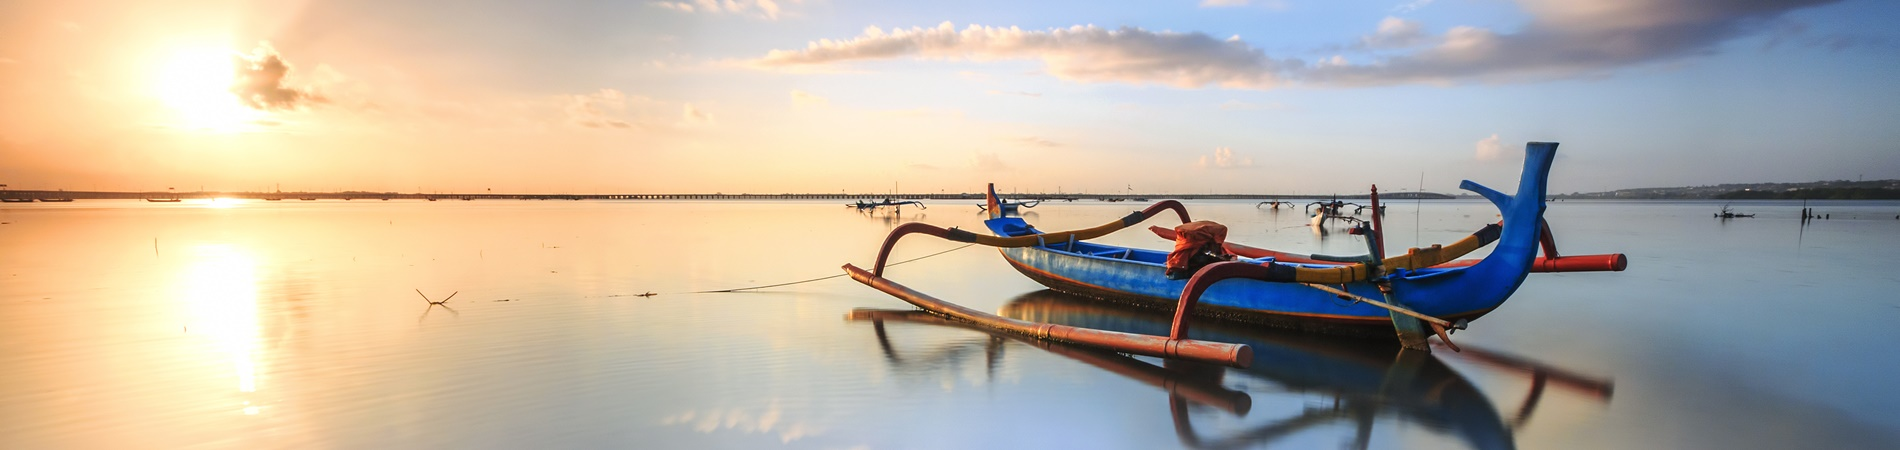 shutterstock_403764259 fishing boats in Sanur